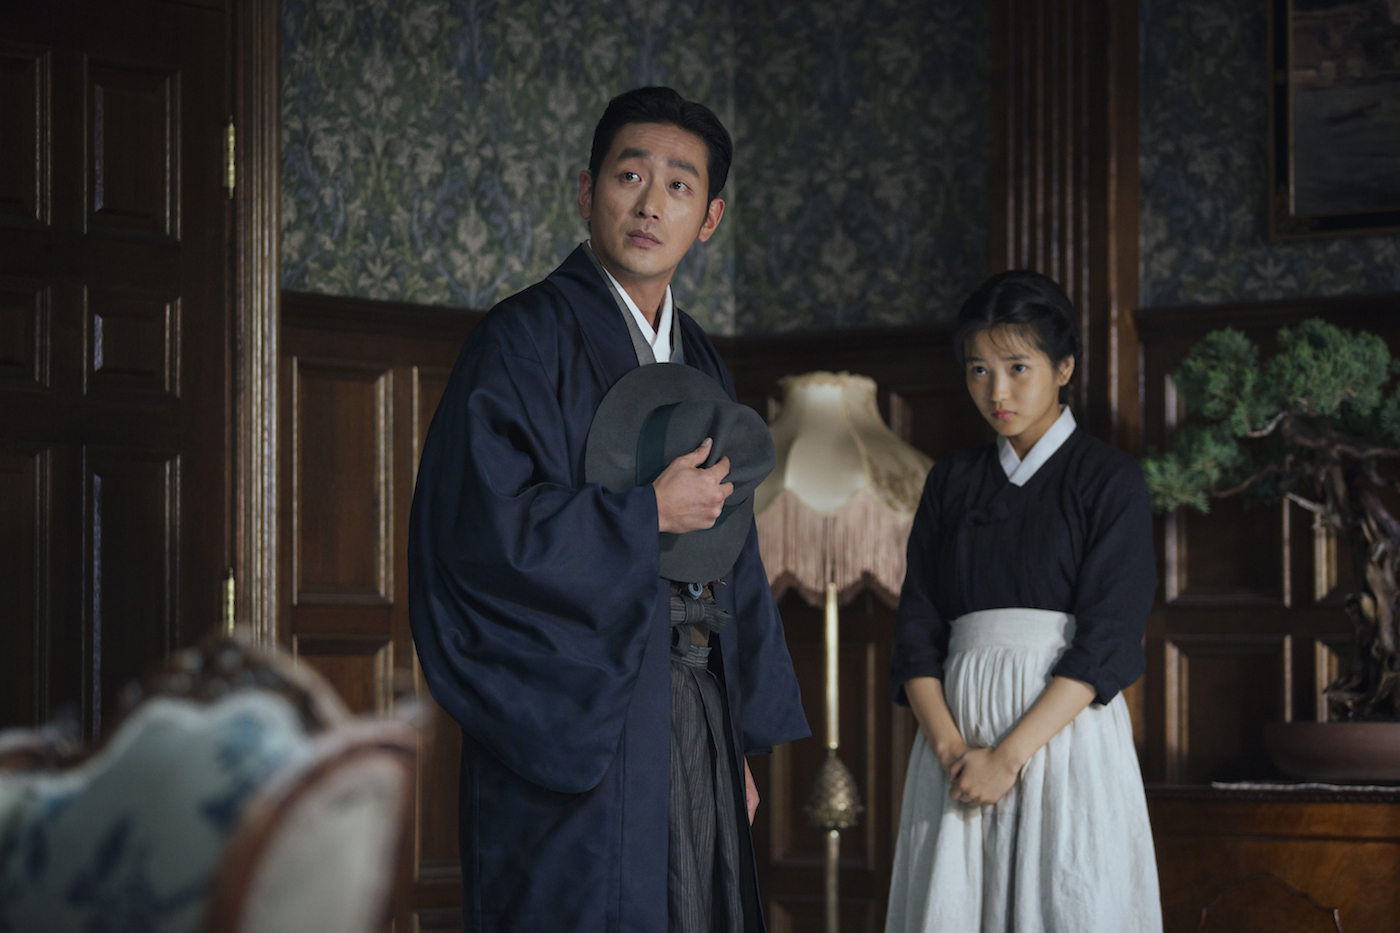 The Handmaiden VIFF 2016 Review